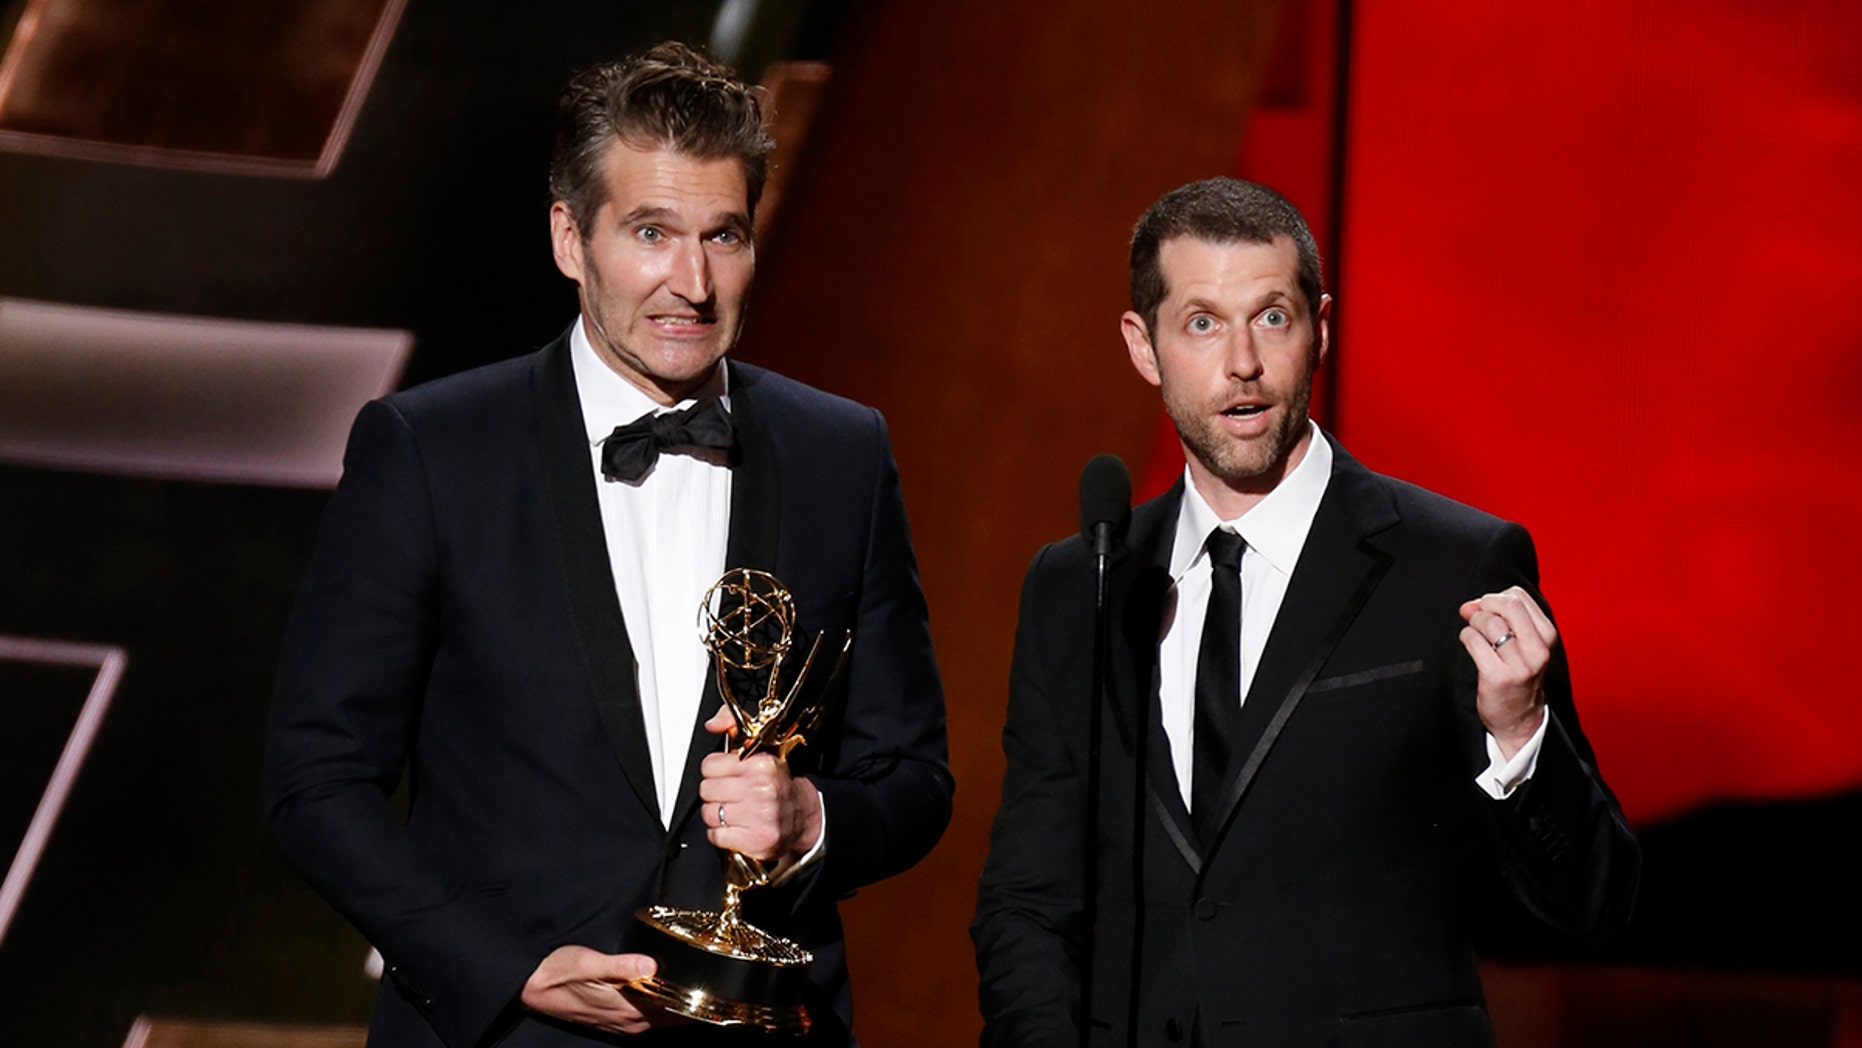 """David Benioff (L) and D.B. Weiss accept the award for Outstanding Writing For A Drama Series for HBO's """"Game of Thrones"""" at the 67th Primetime Emmy Awards in Los Angeles, California September 20, 2015.  REUTERS/Lucy Nicholson - TB3EB9L06GQU7"""